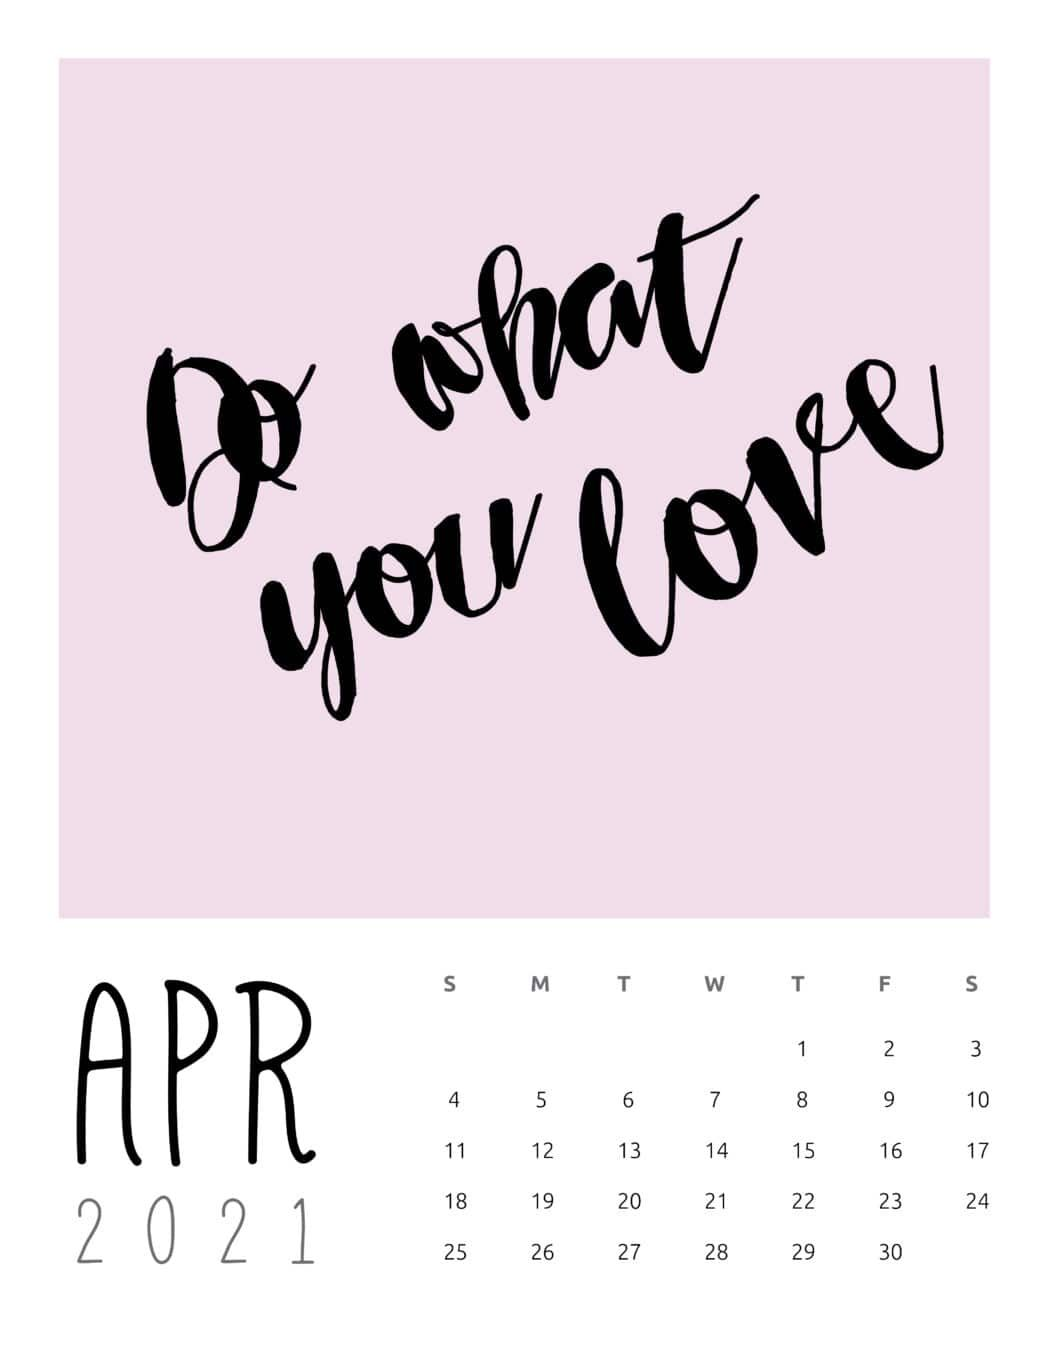 2021 Inspirational Quotes Calendar World Of